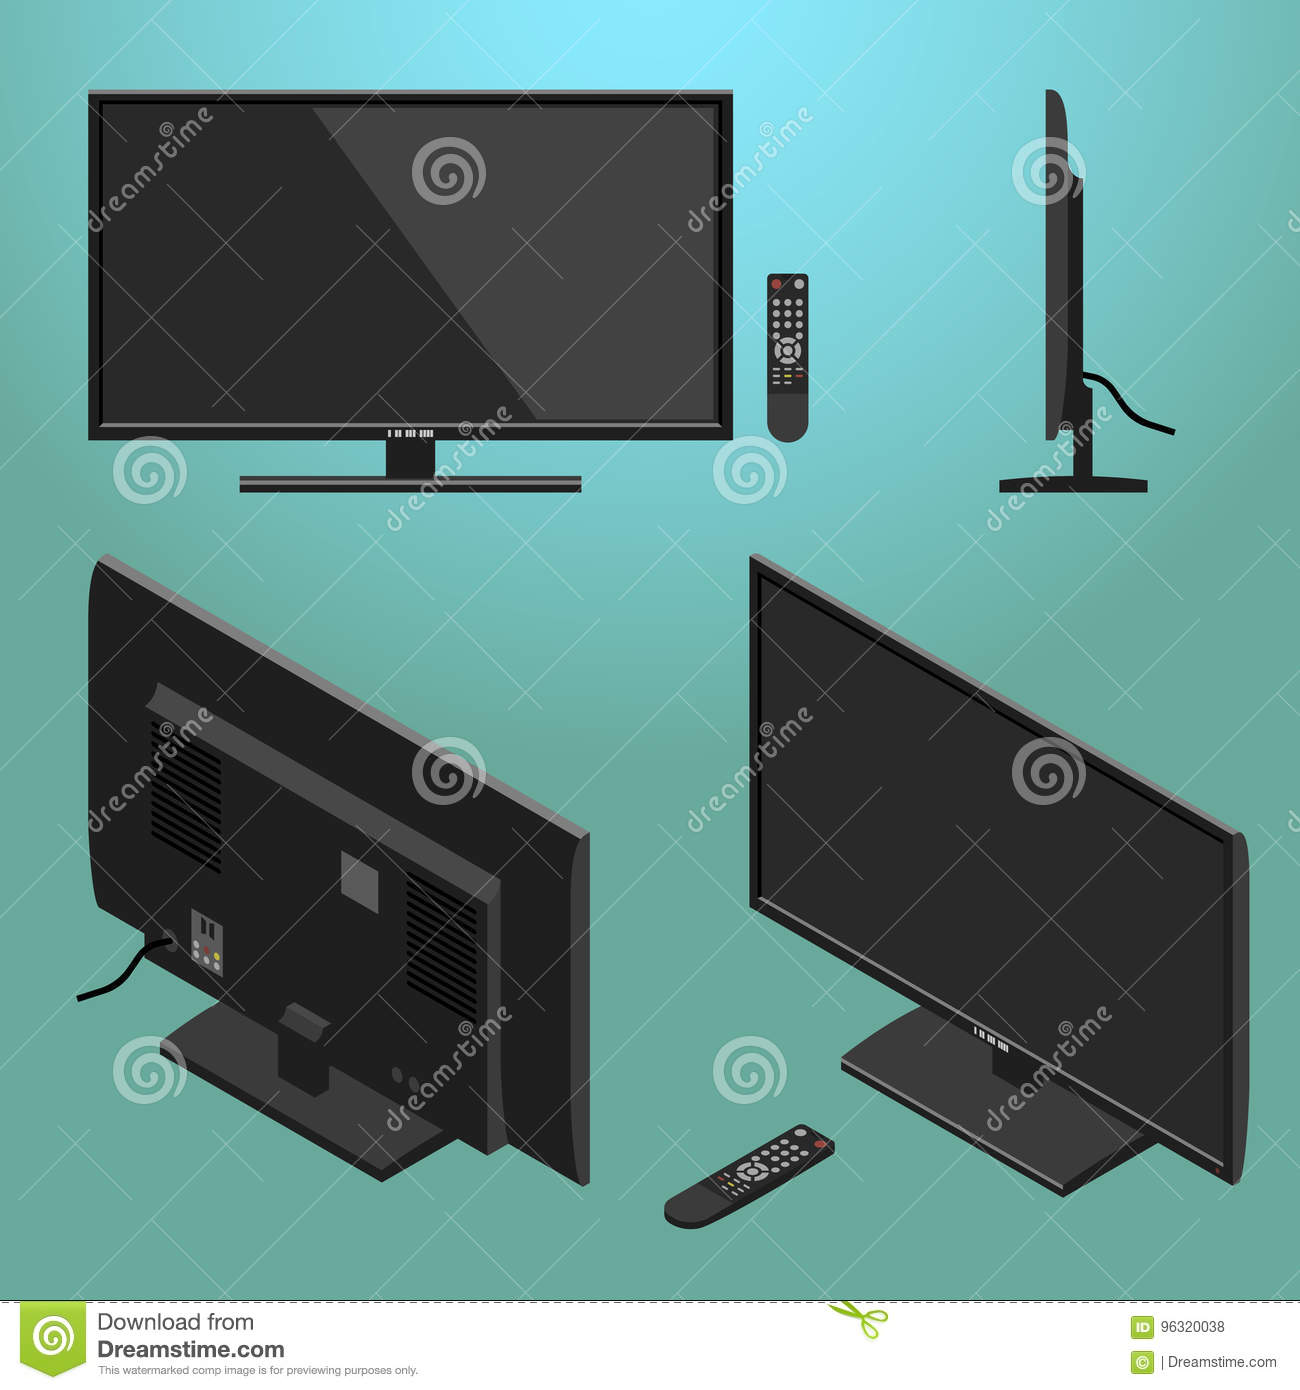 3D Illustration Of Black Modern LED TV With Remote Control Isometric